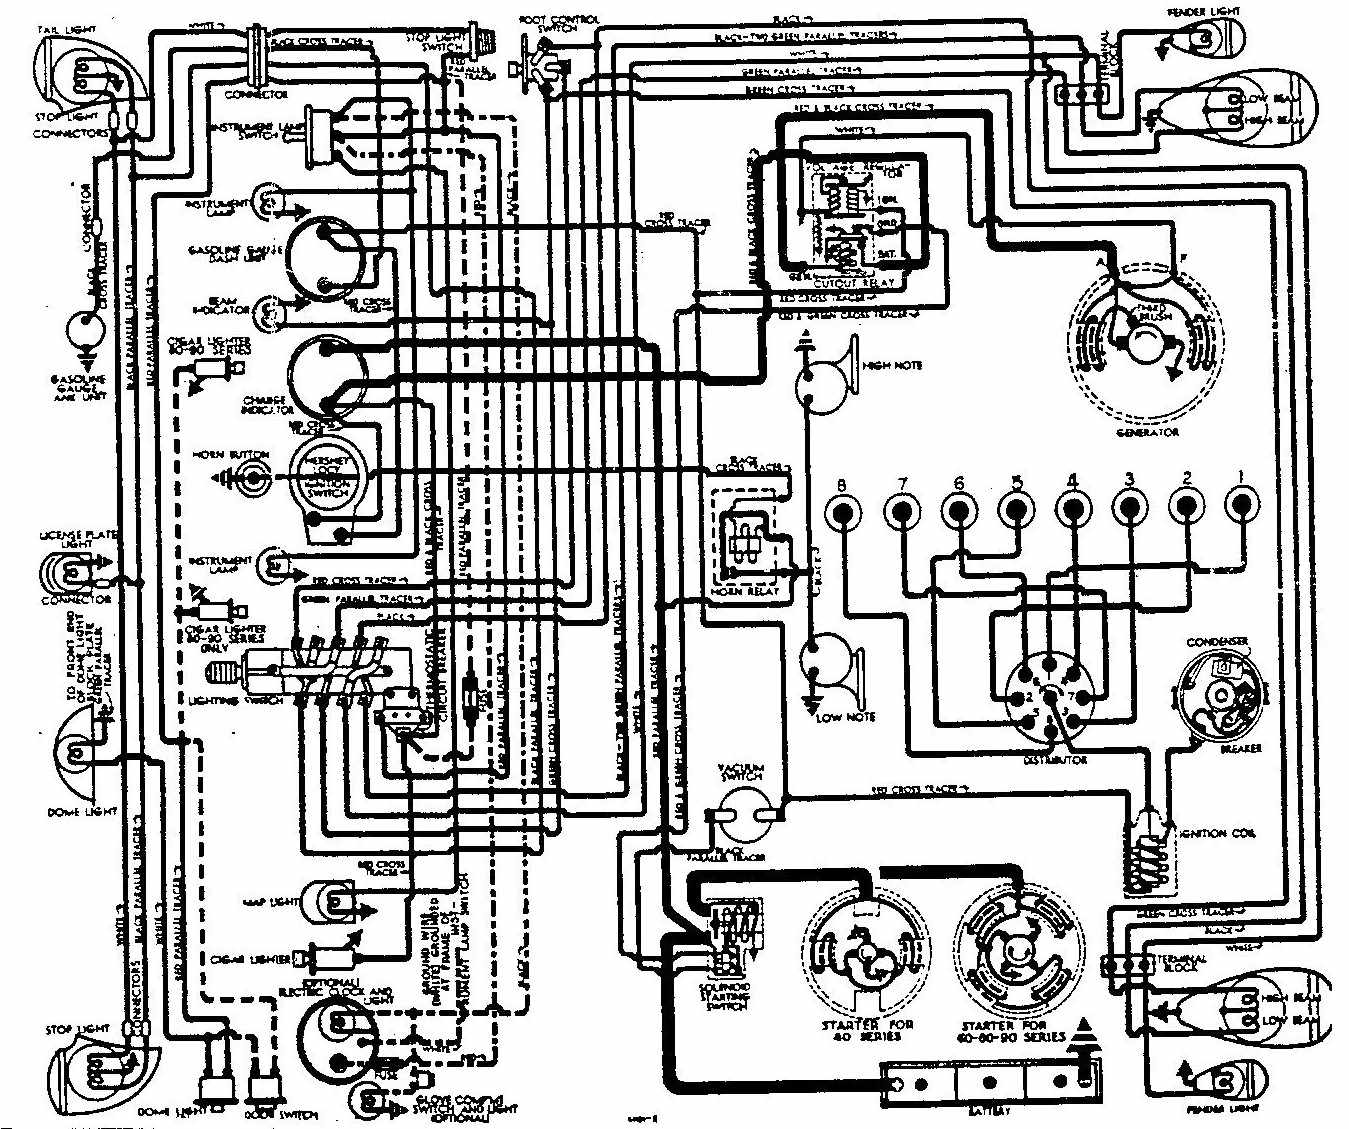 53 buick wiring diagram free picture schematic wiring diagram rh graphiko co